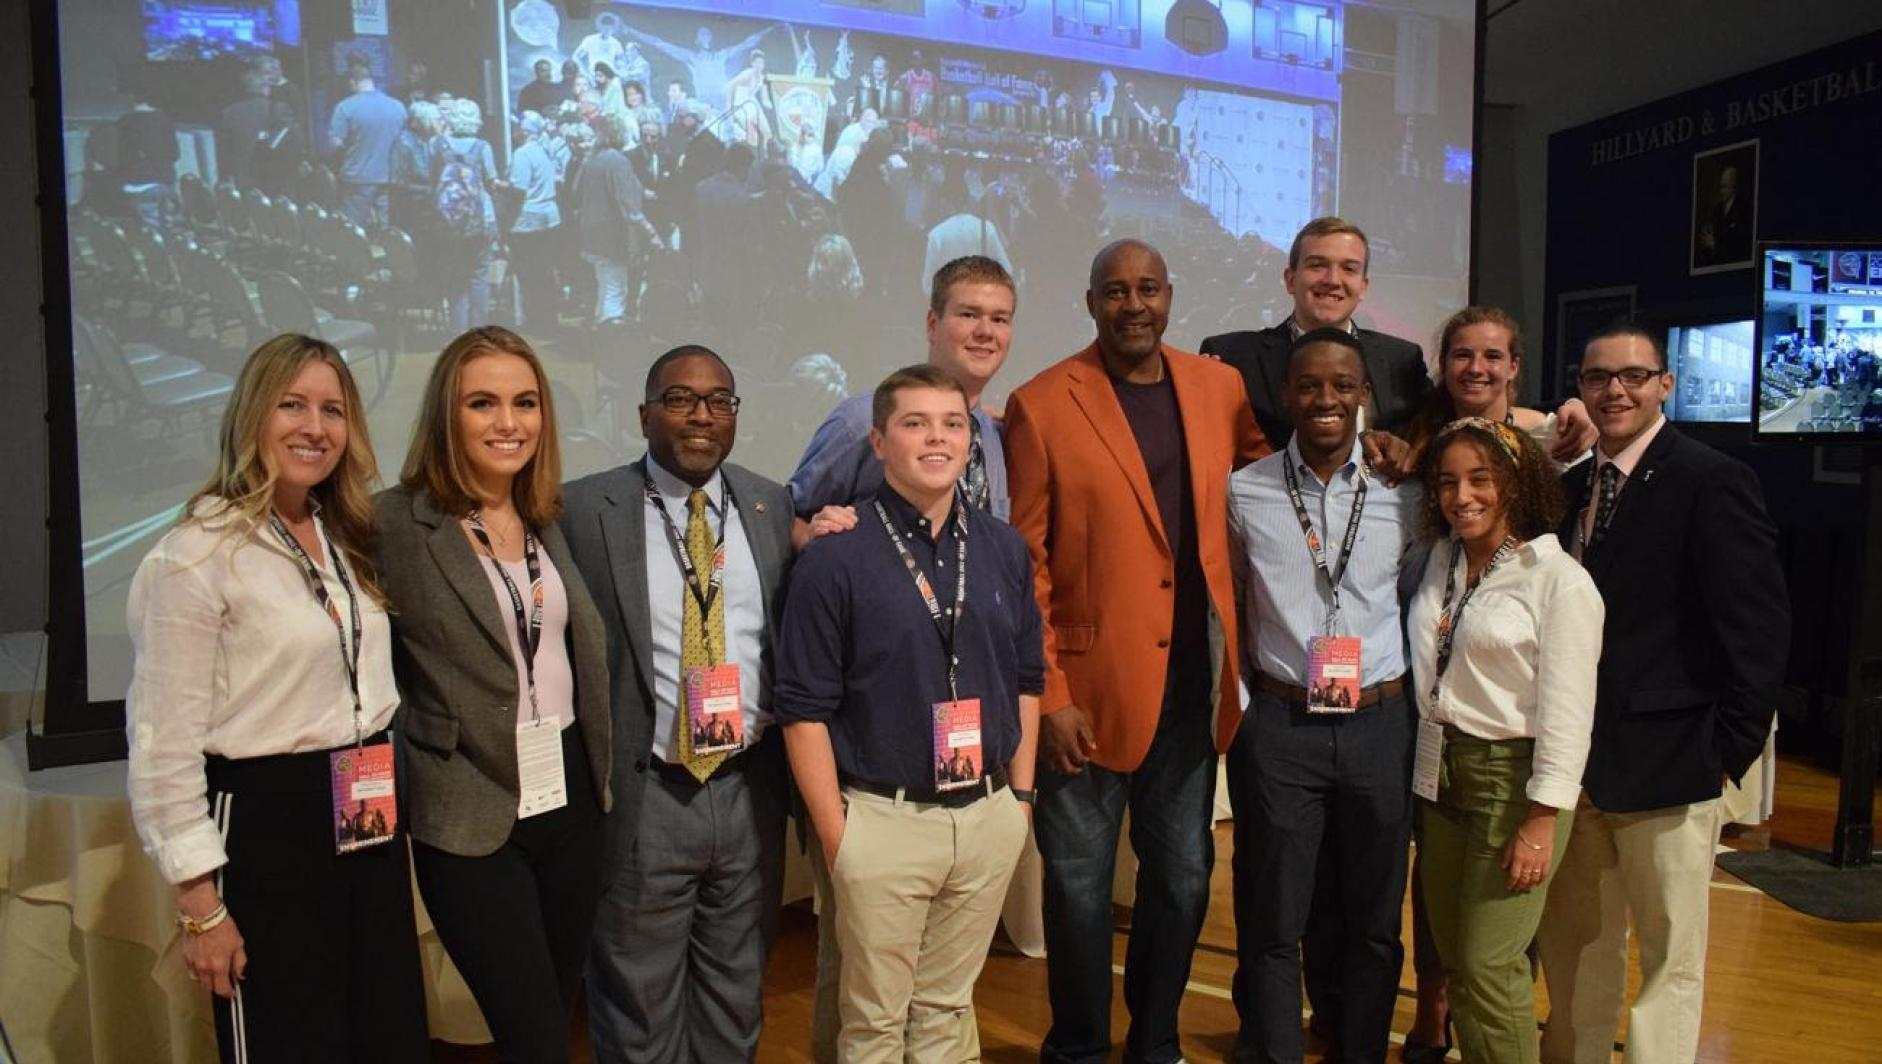 Springfield College students with Sidney Moncrief at the Basketball Hall of Fame.